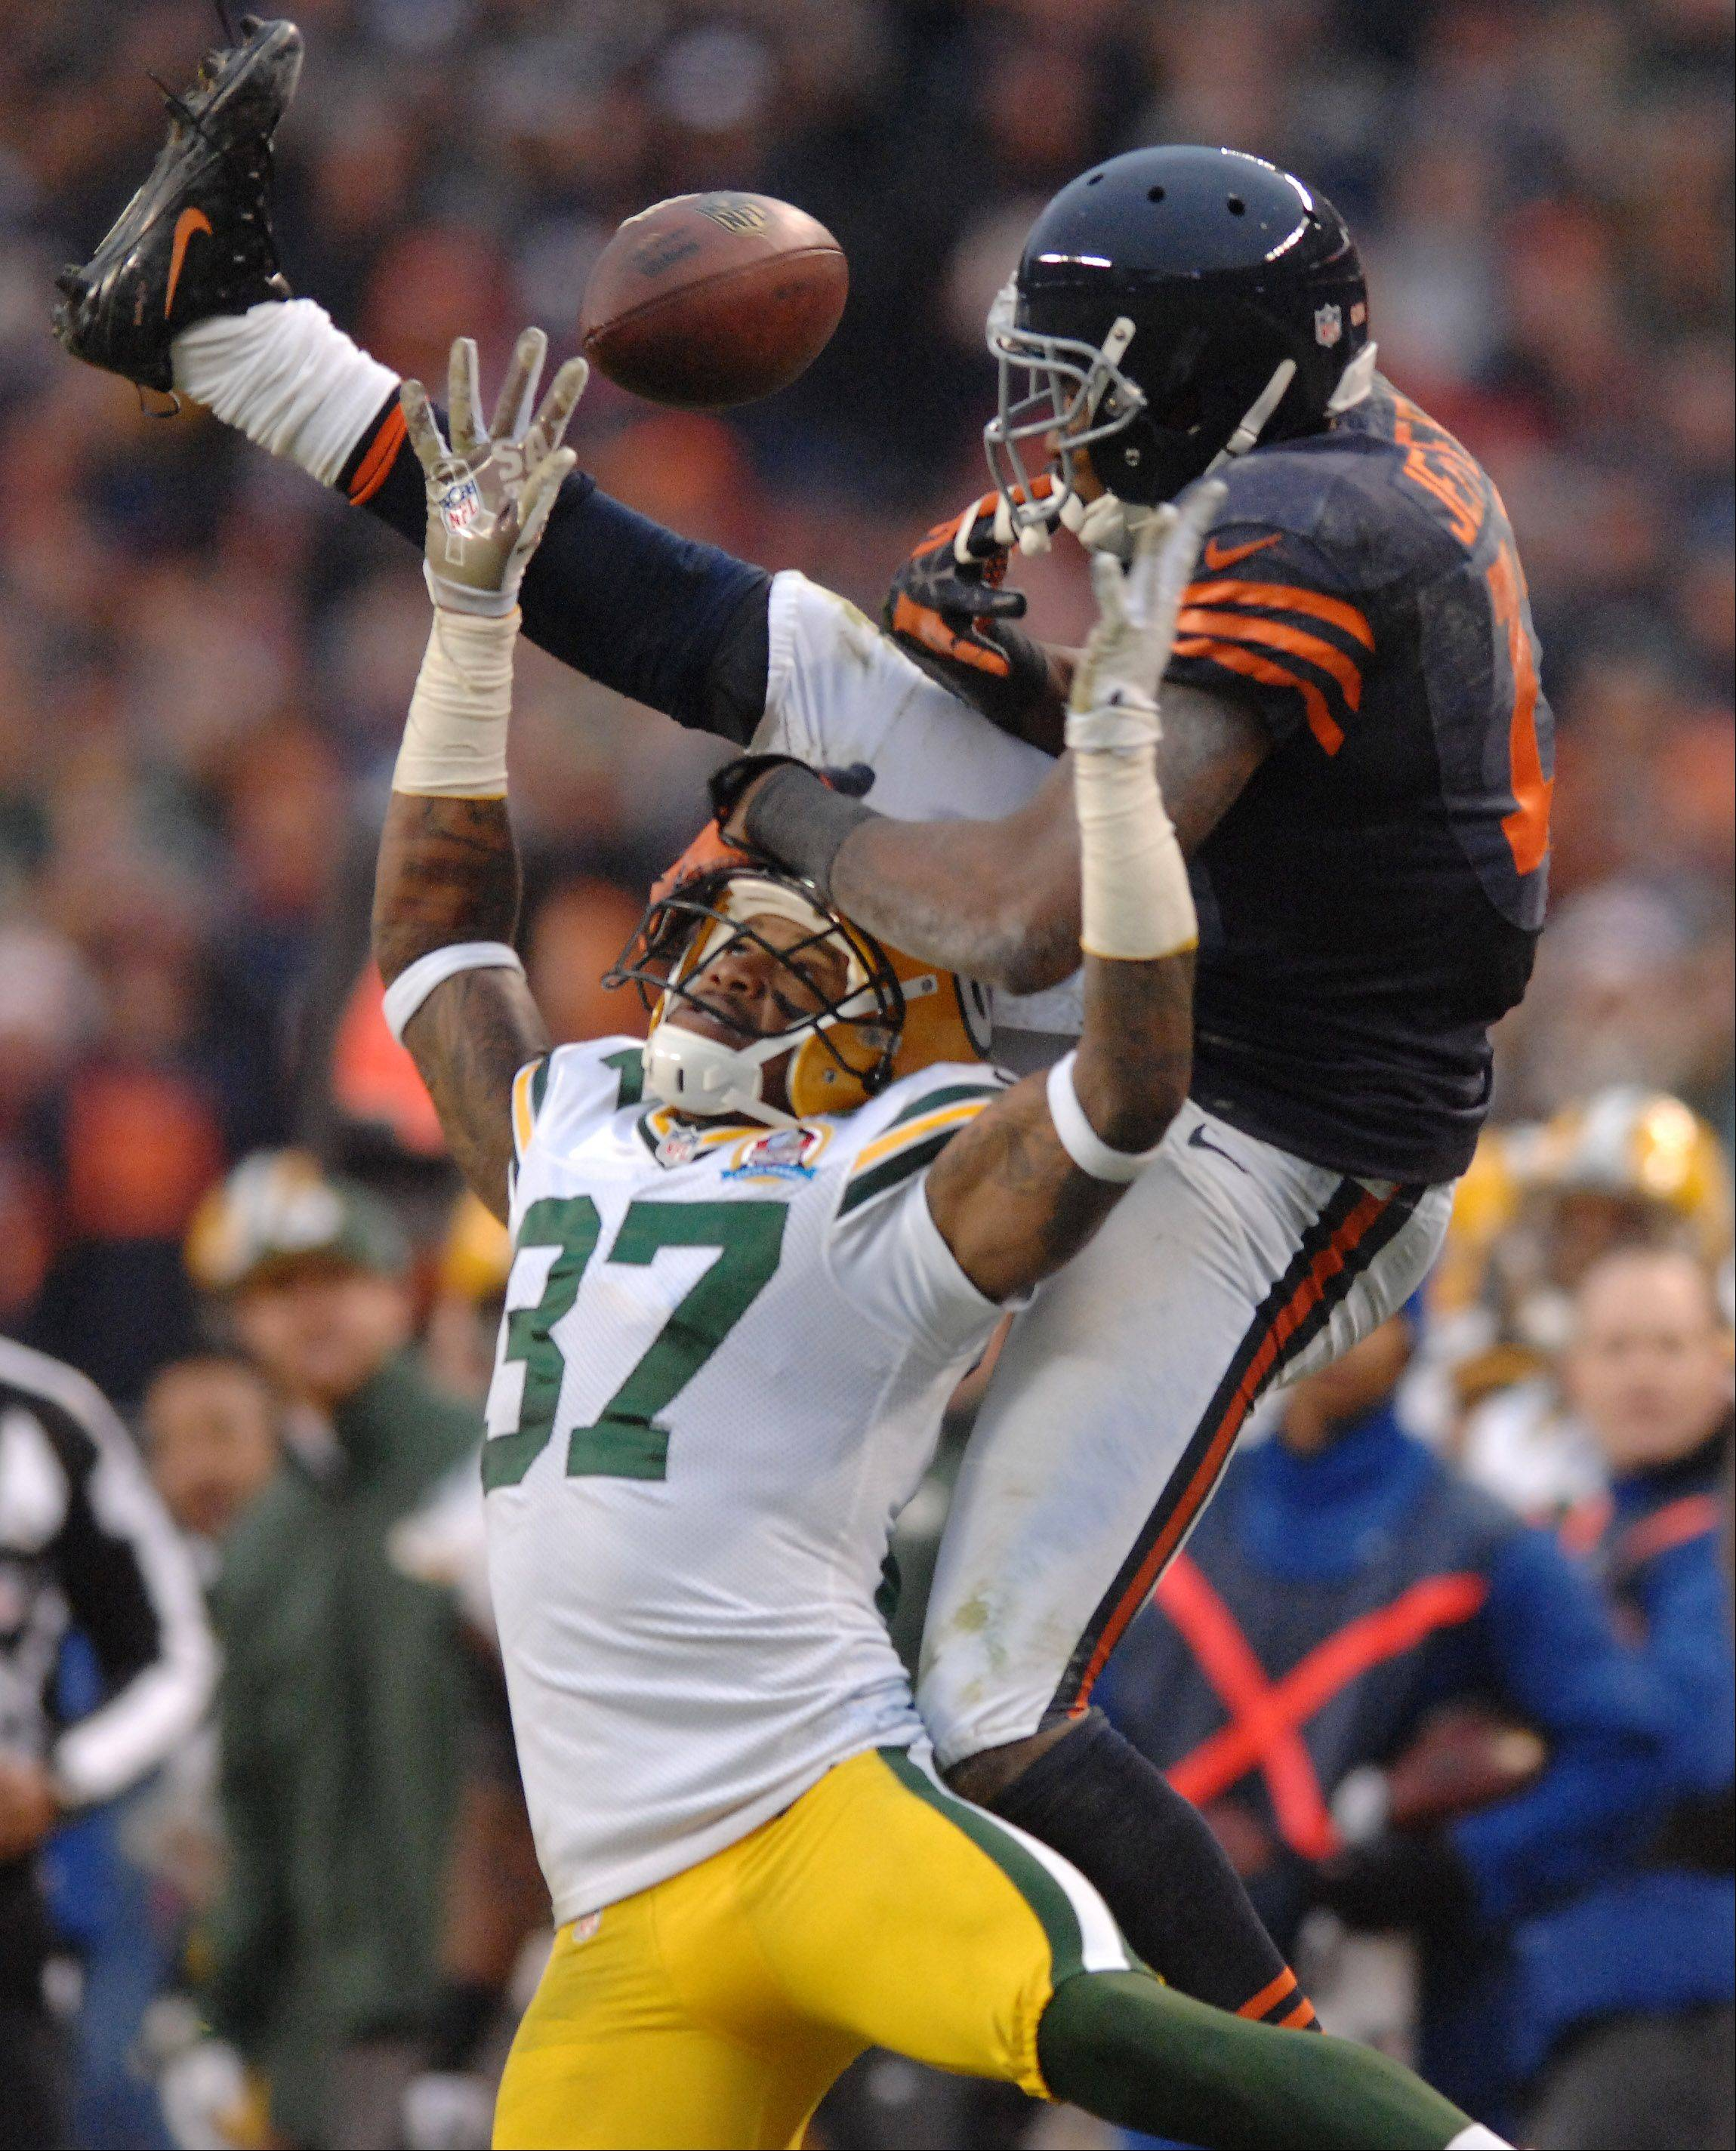 Bears wide receiver Alshon Jeffery (17) can't come up with a catch as he's defended by Green Bay Packers cornerback Sam Shields (37) during Sunday's game at Soldier Field in Chicago.